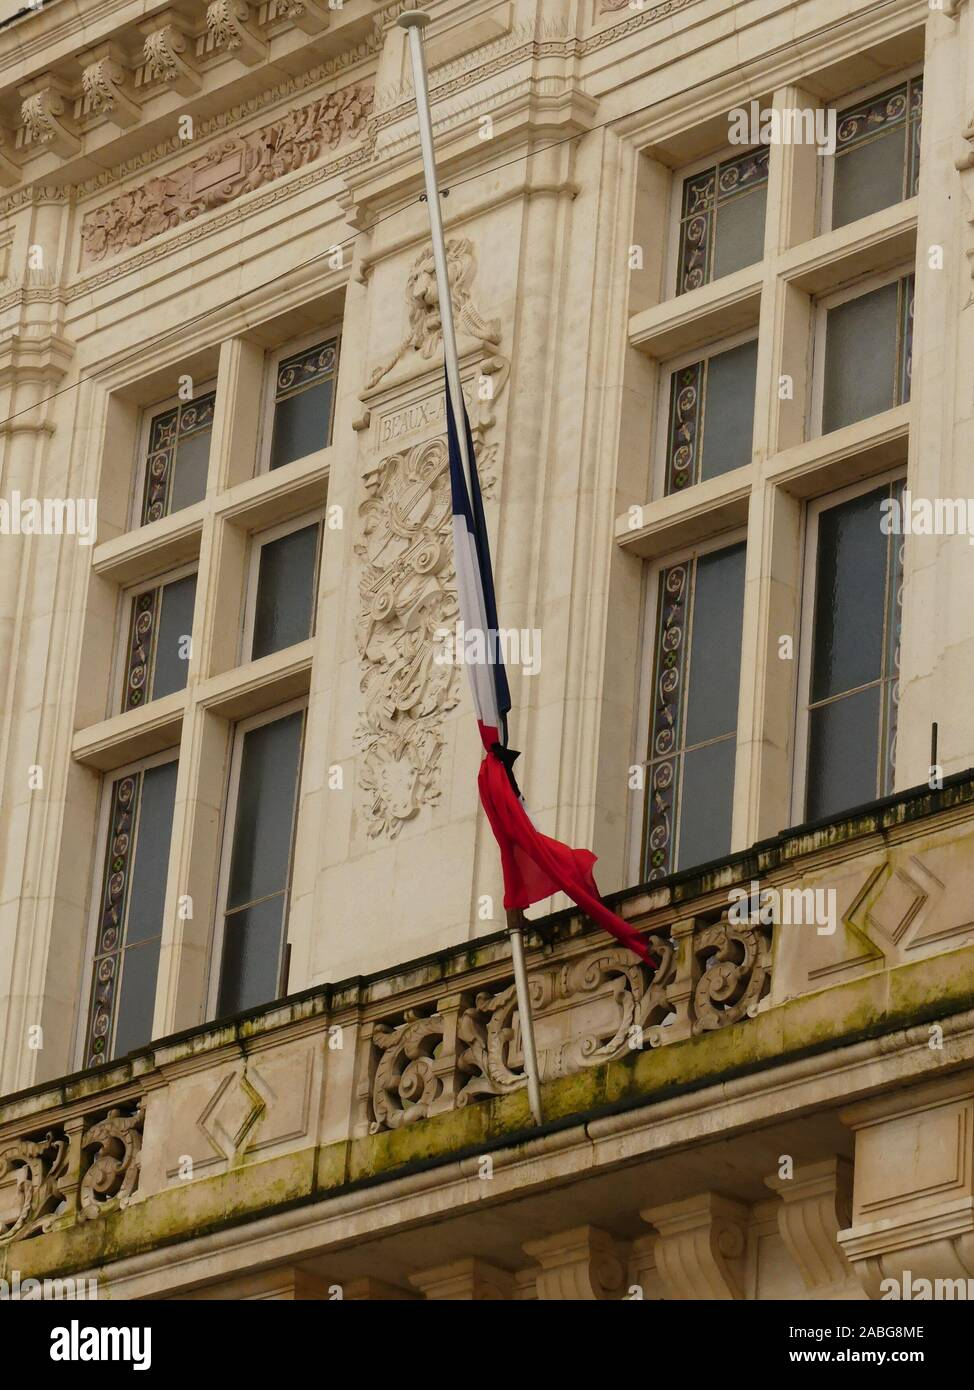 Tribute to the 13 French soldiers of Operation Barkhane Killed in Mali monday, November 25, 2019,The French  Flag of  City Hall of Niort at  half mast Stock Photo